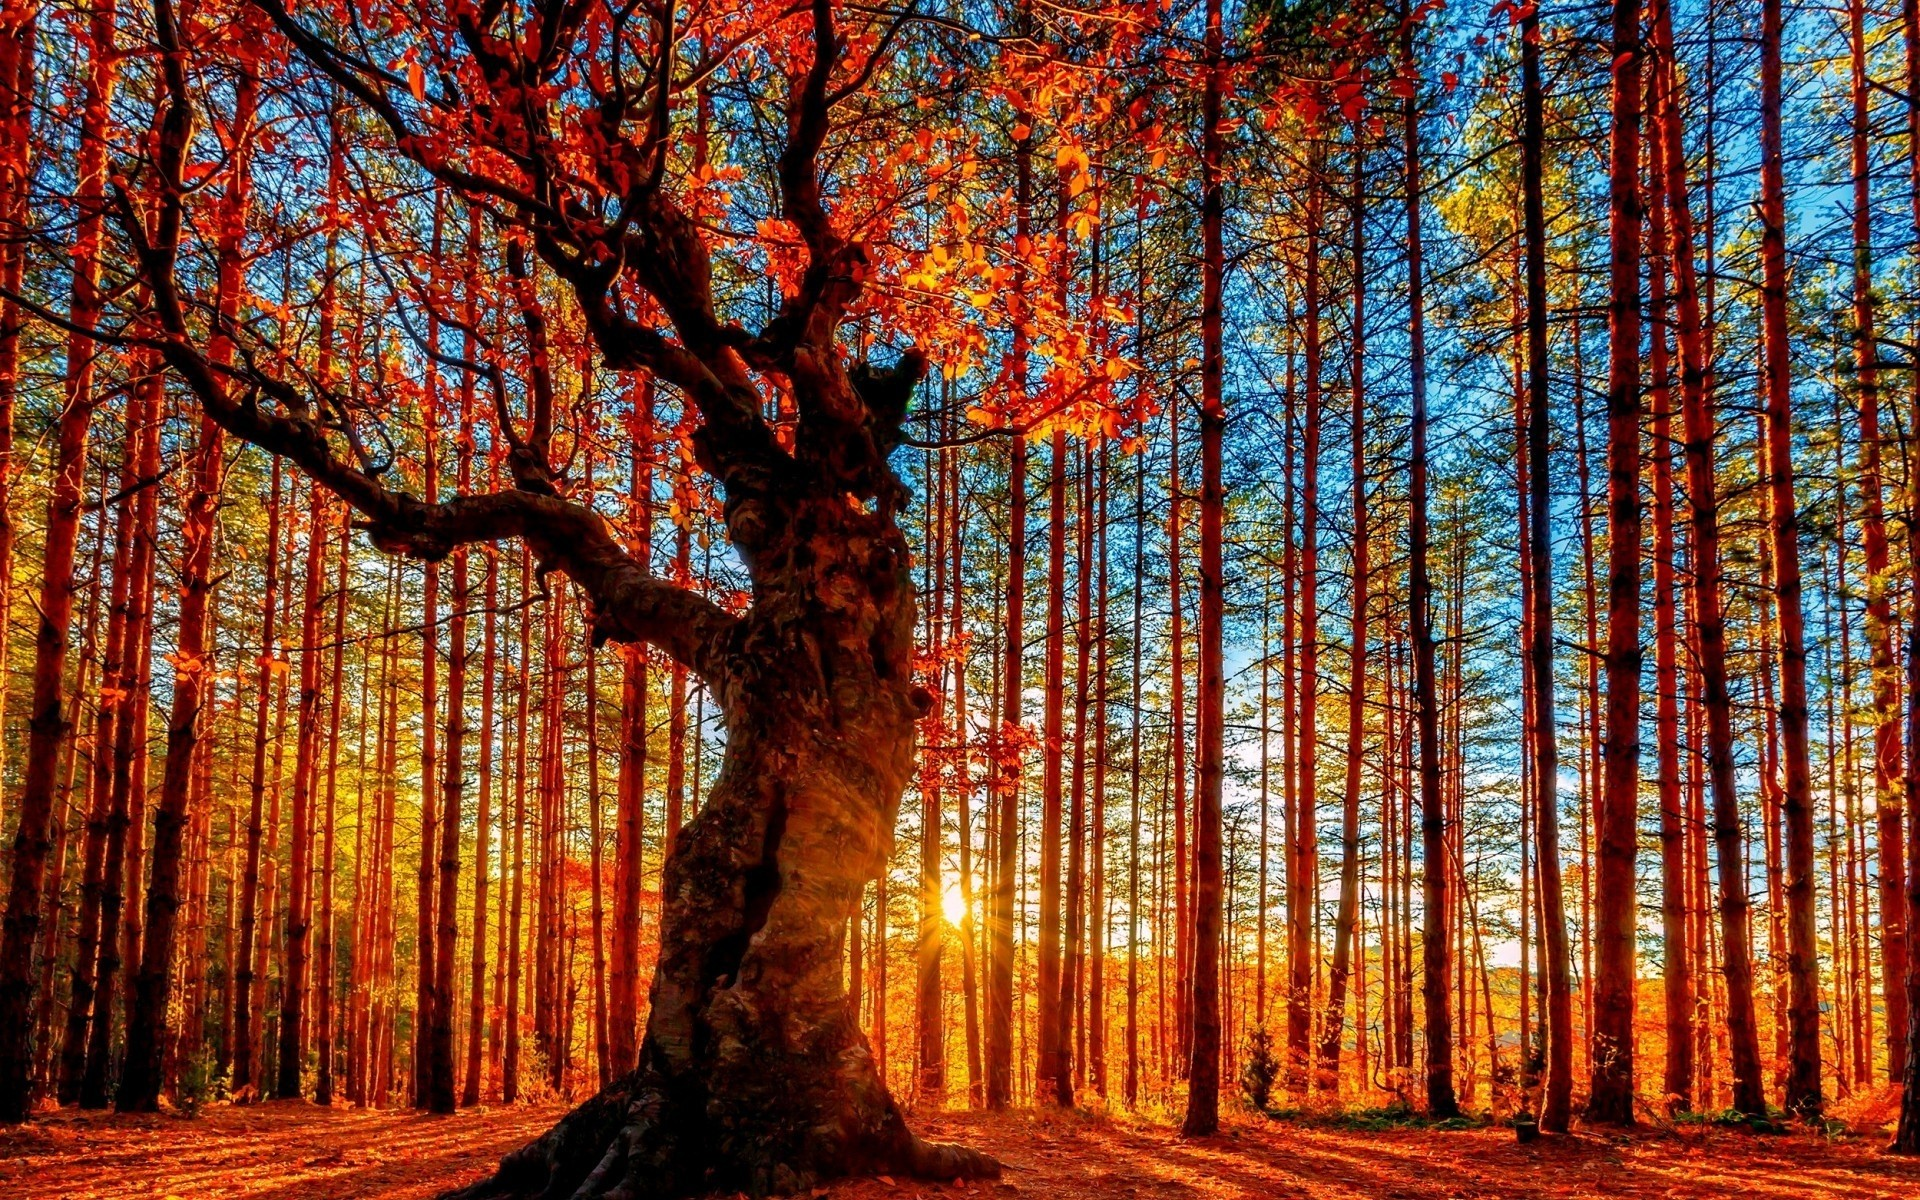 autumn wood tree fall leaf nature landscape fair weather park season sun scenic branch bright dawn outdoors light forest lights